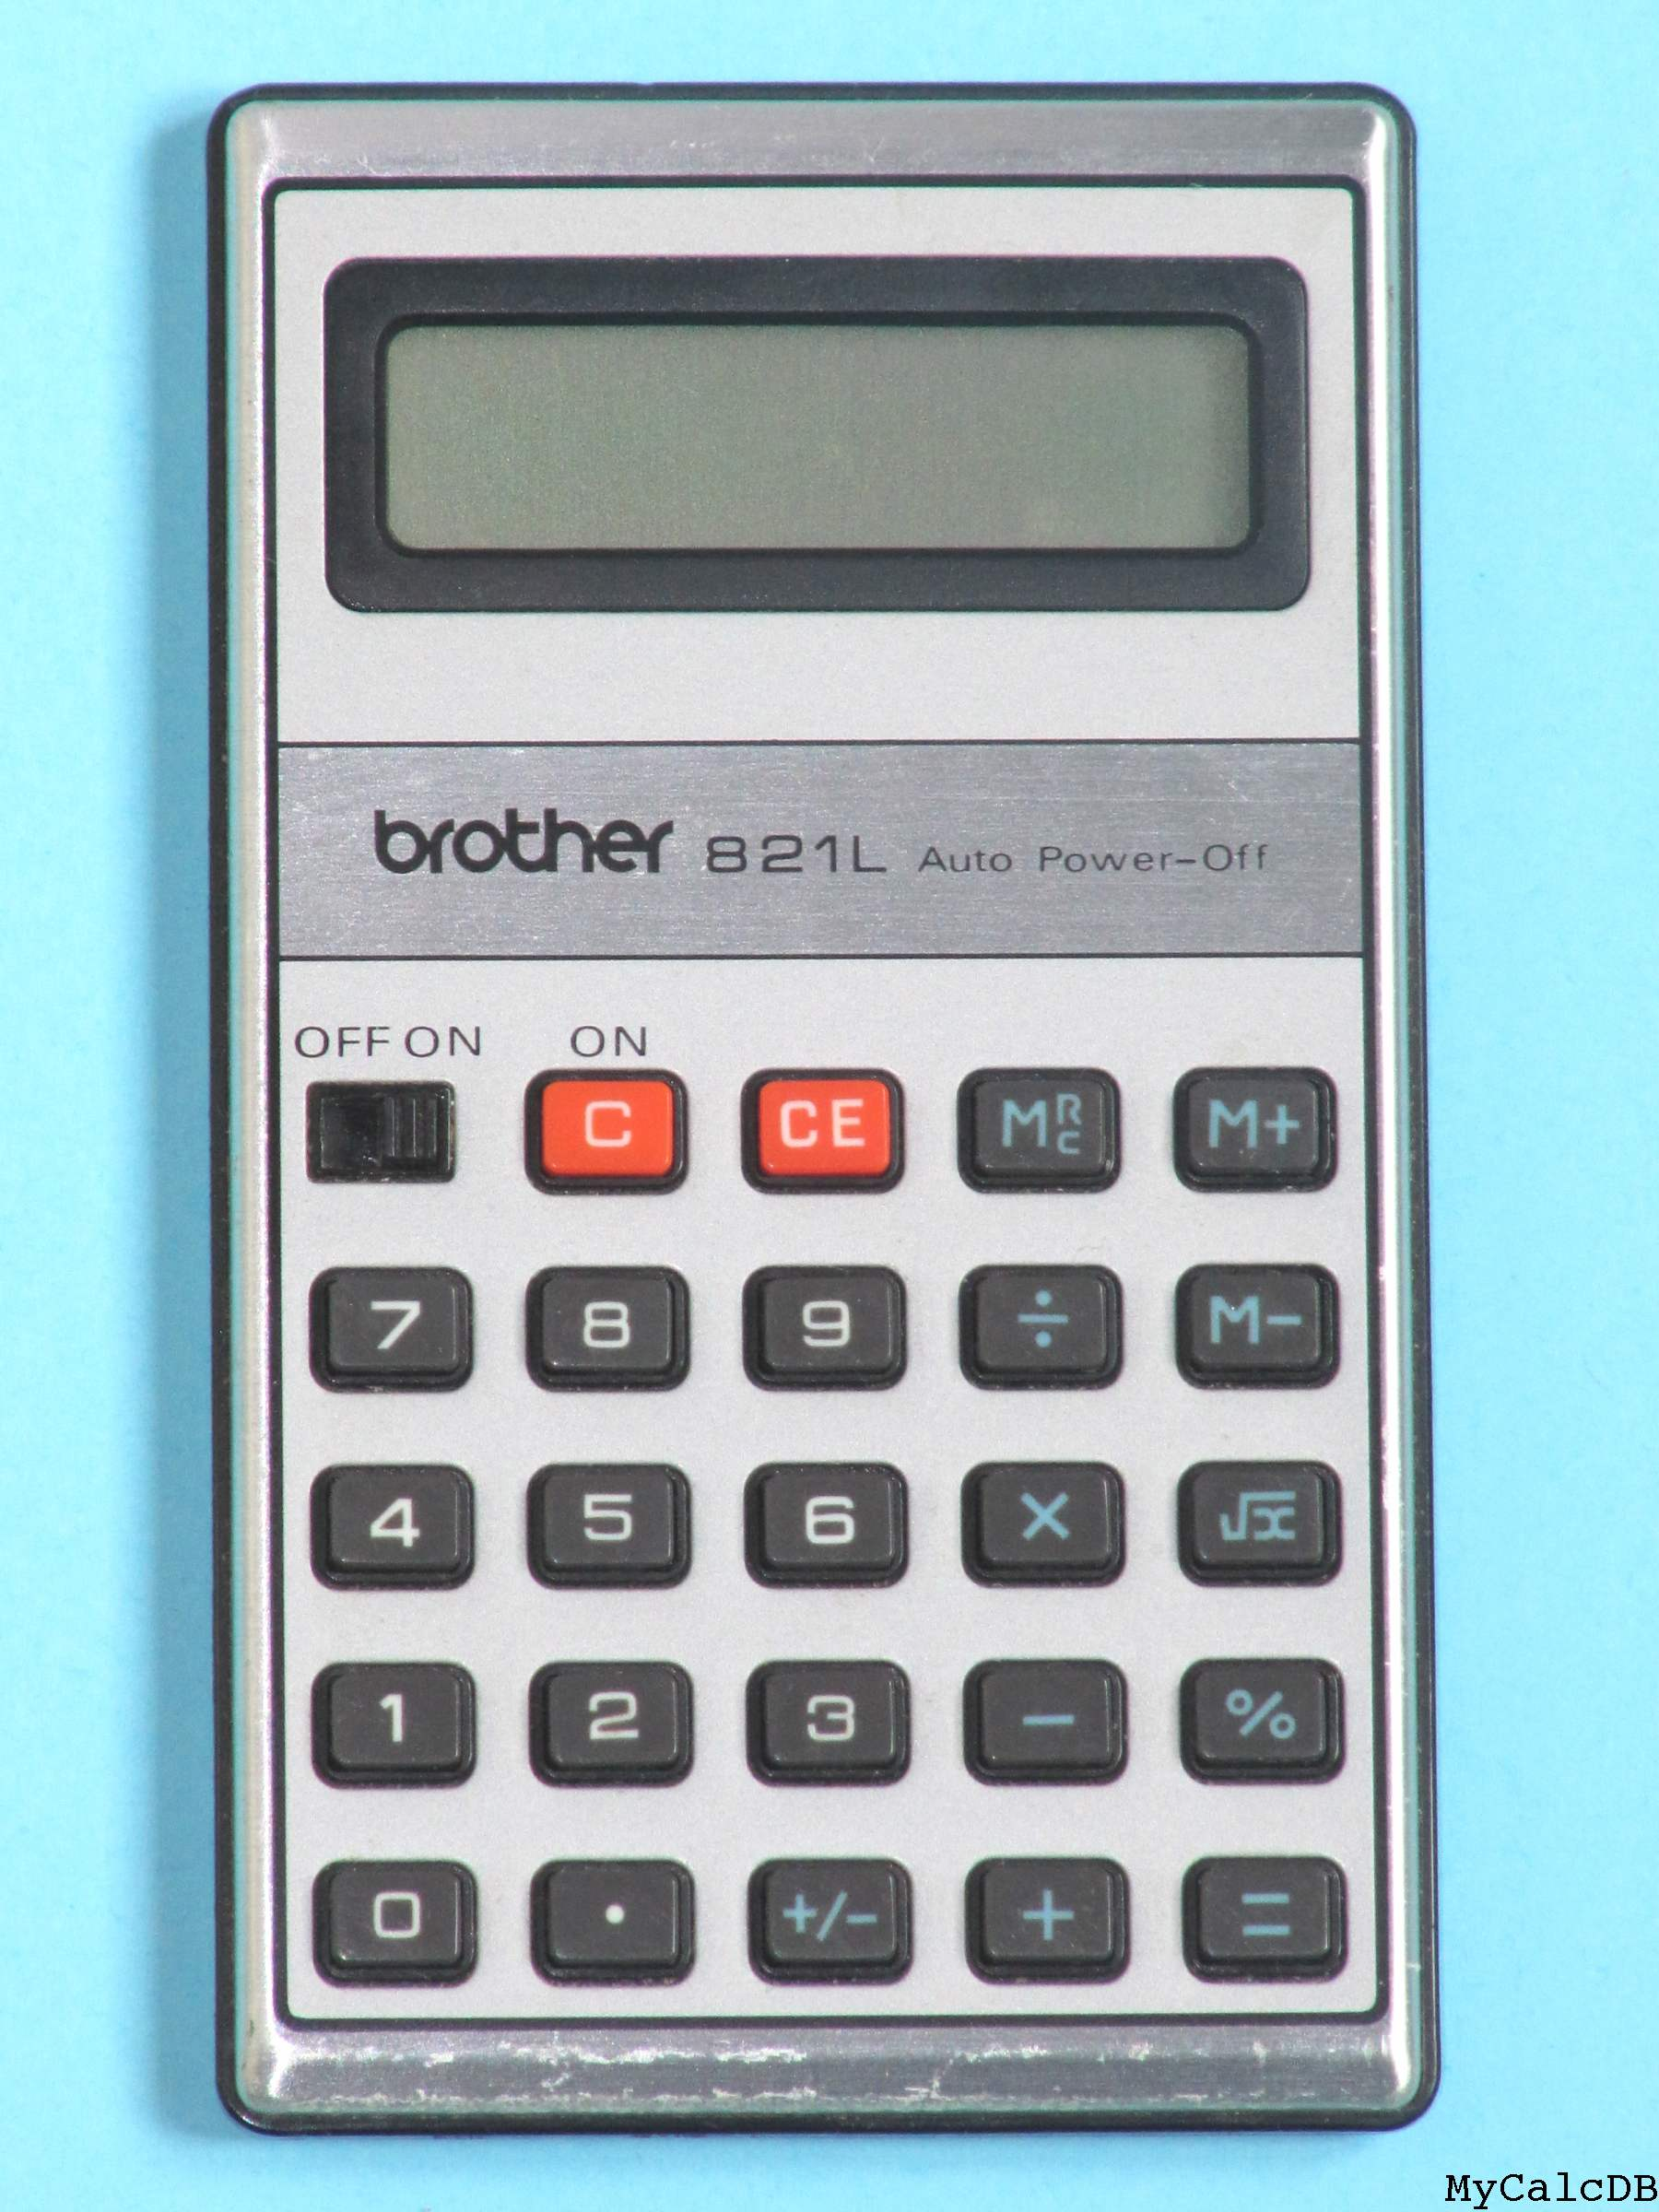 Brother 821L